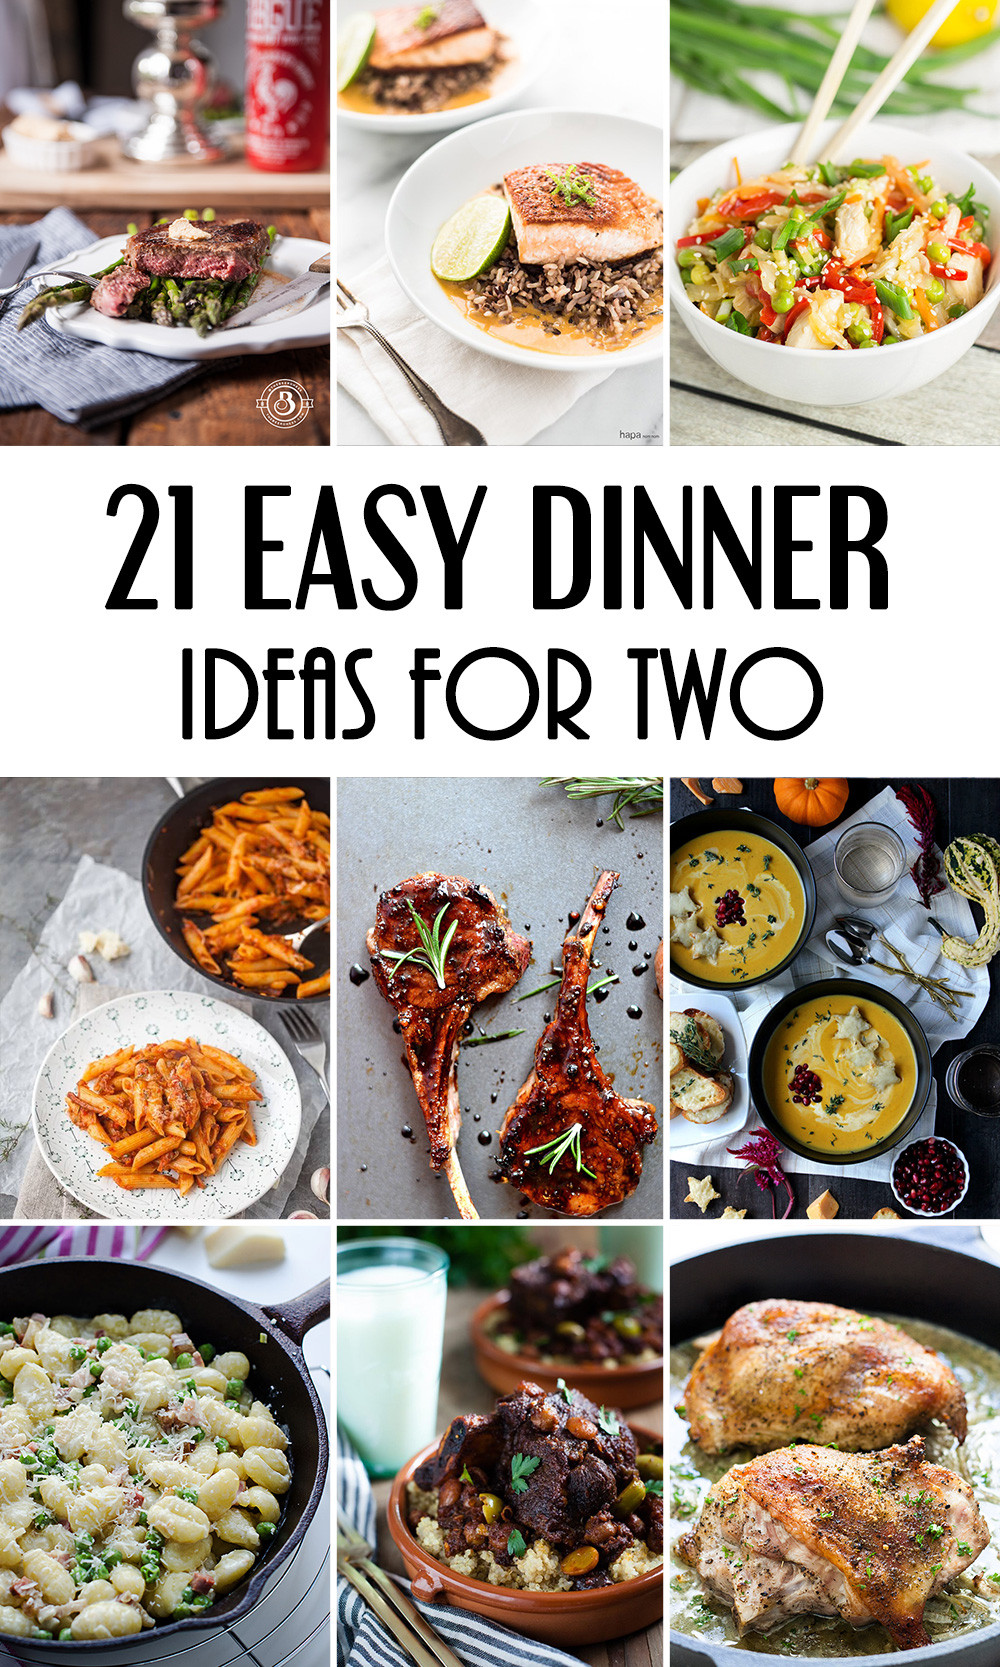 Quick Dinner Ideas  21 Easy Dinner Ideas For Two That Will Impress Your Loved e